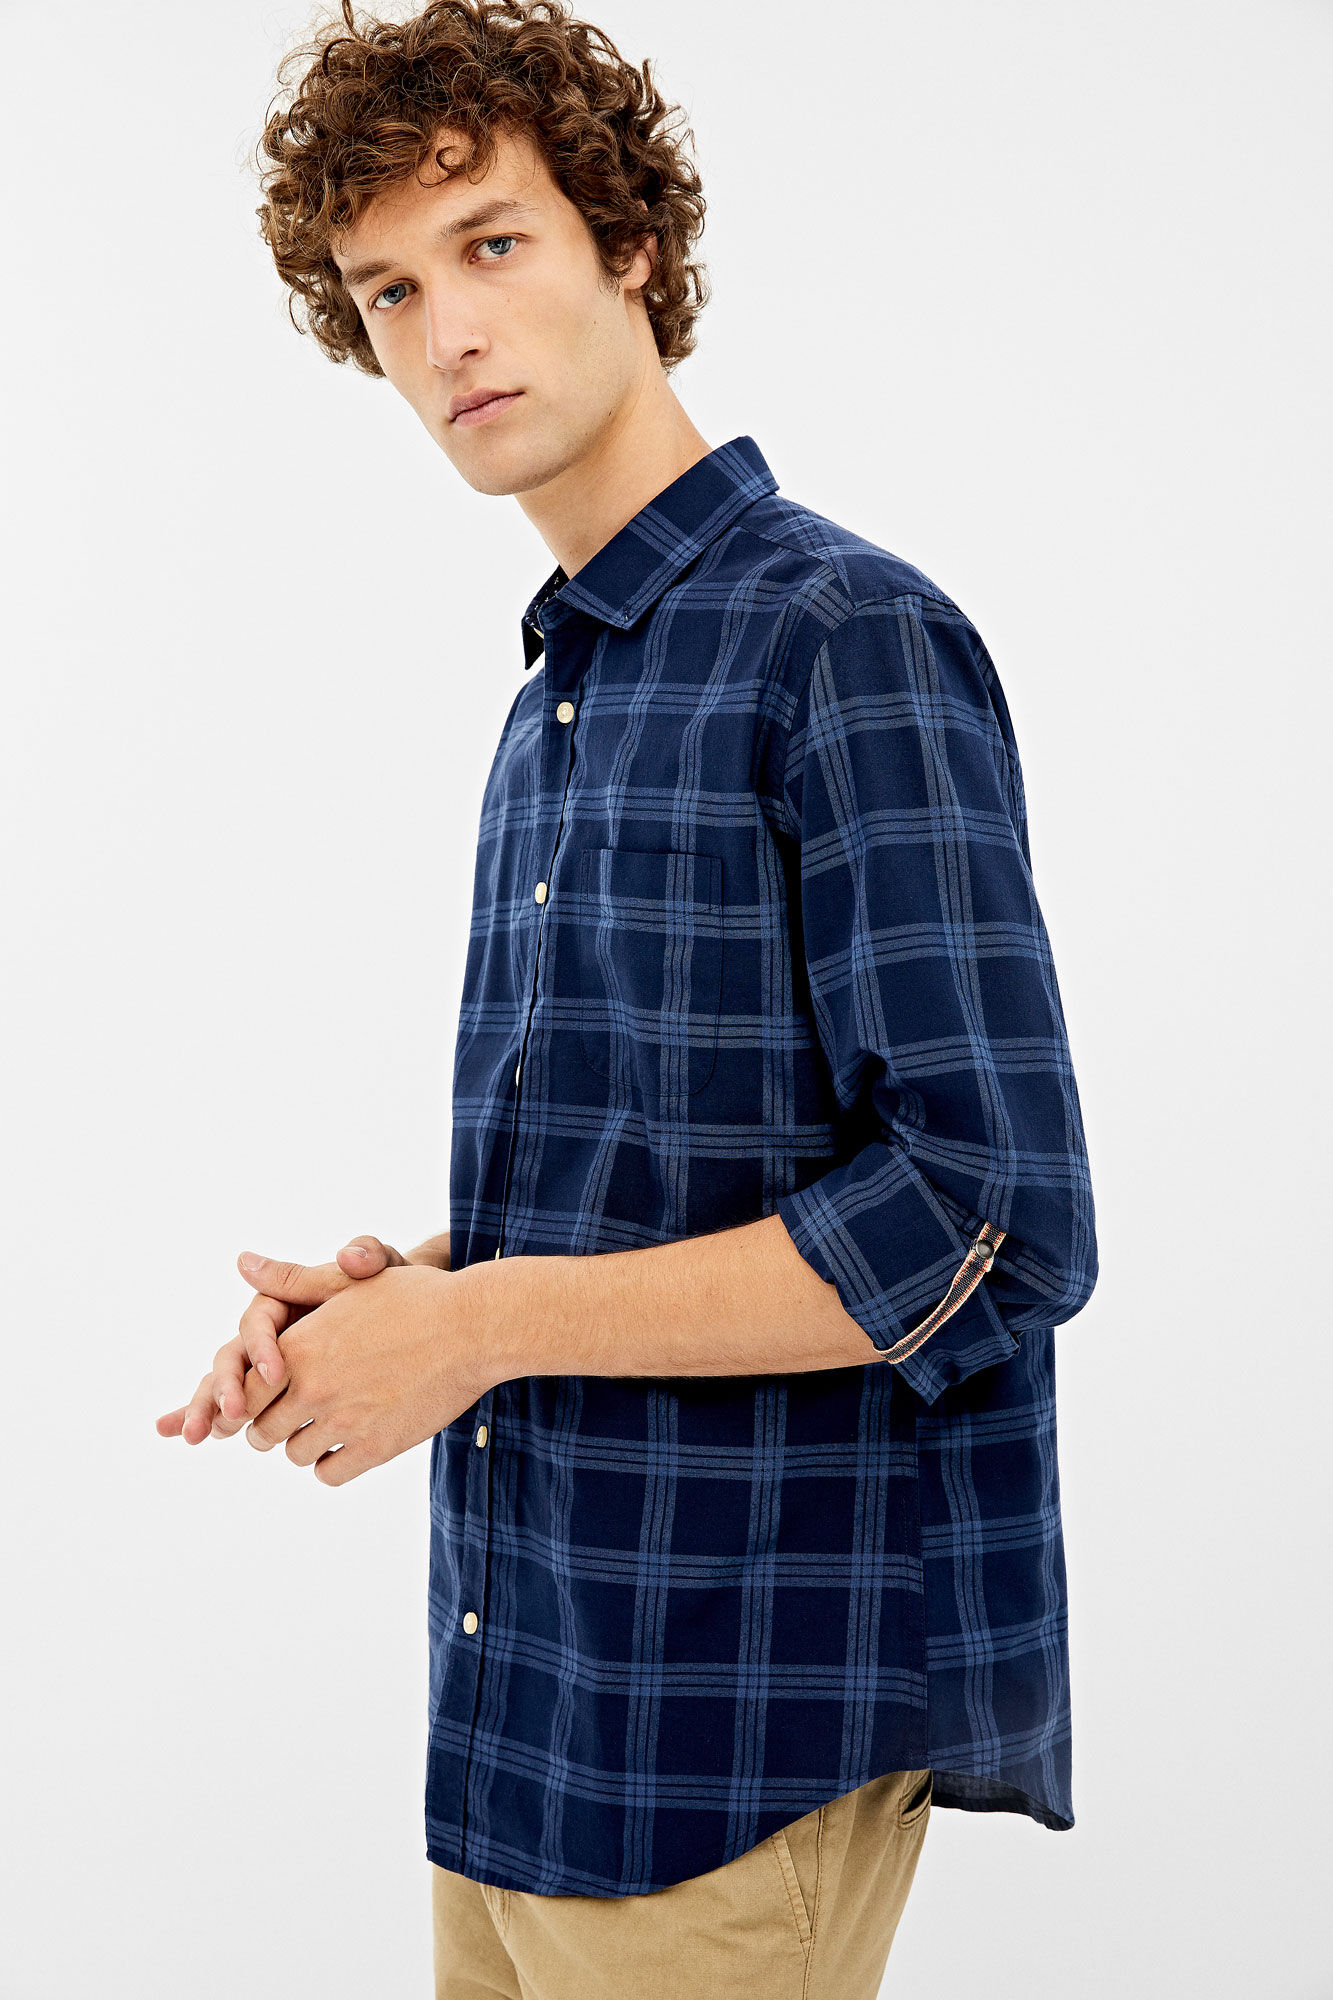 Springfield Frq Gingham Check Camisa Casual Hombre